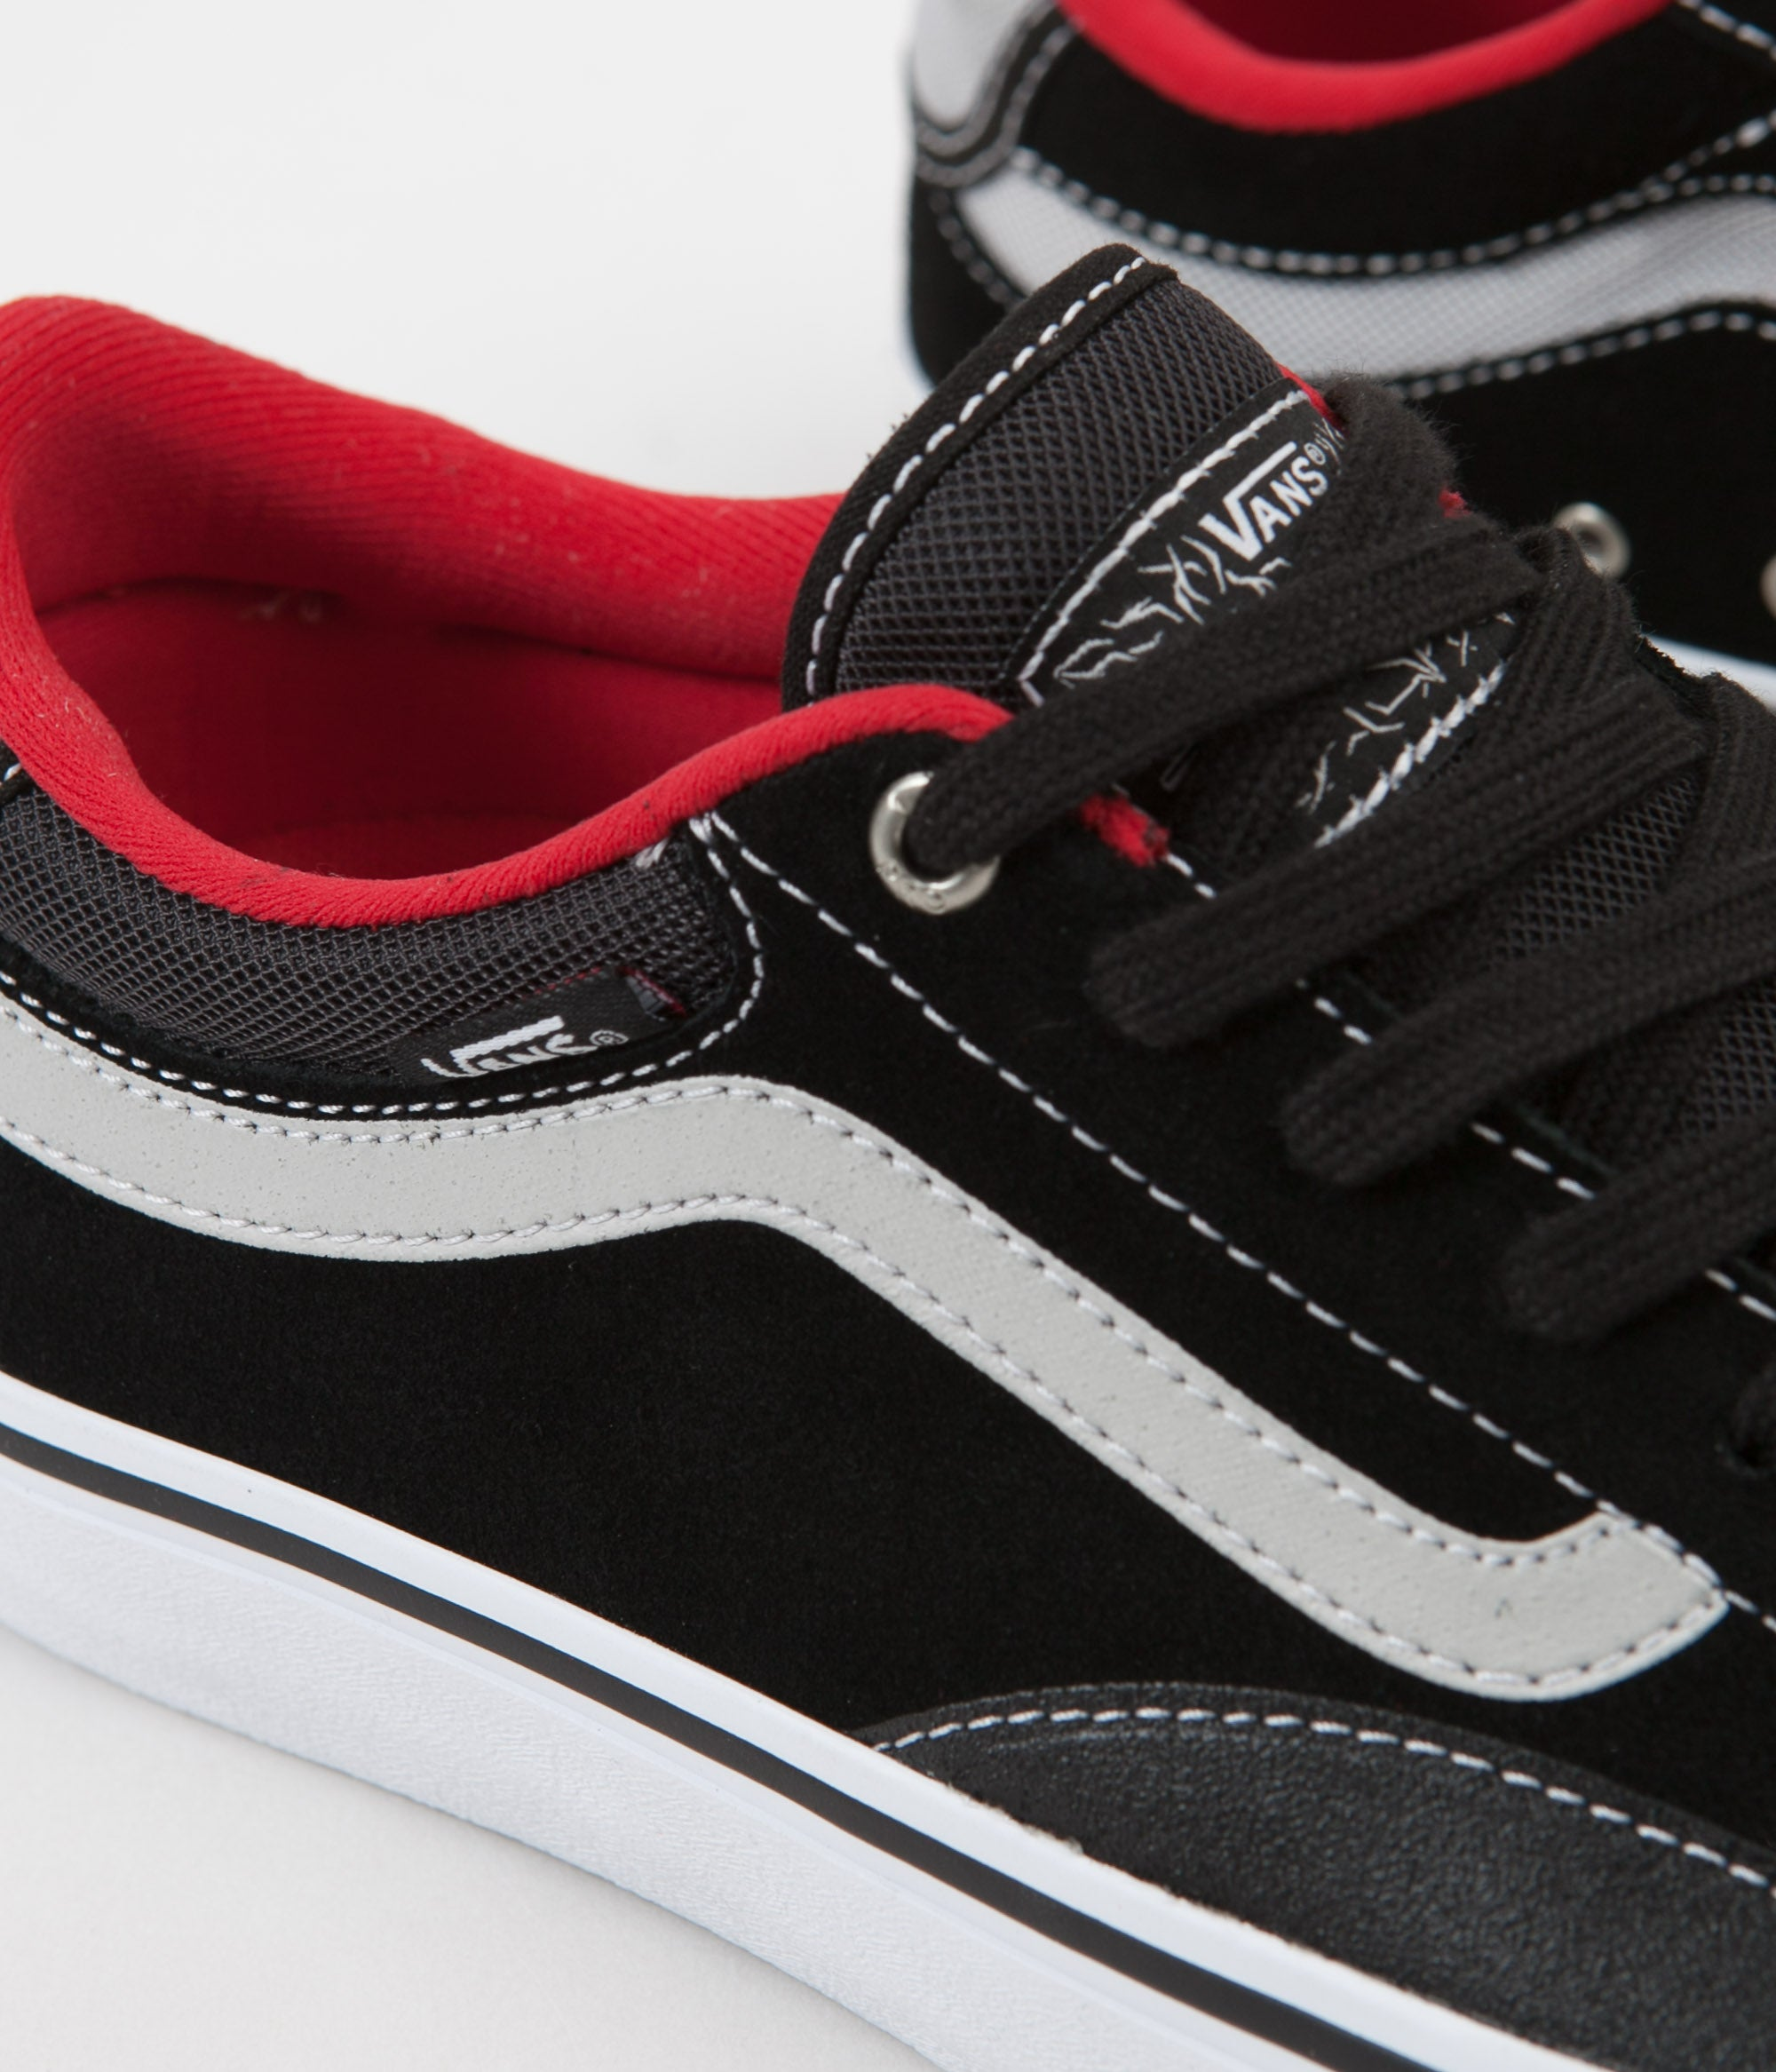 237edee863 ... Vans TNT Advanced Prototype Shoes - Black   White   Red ...